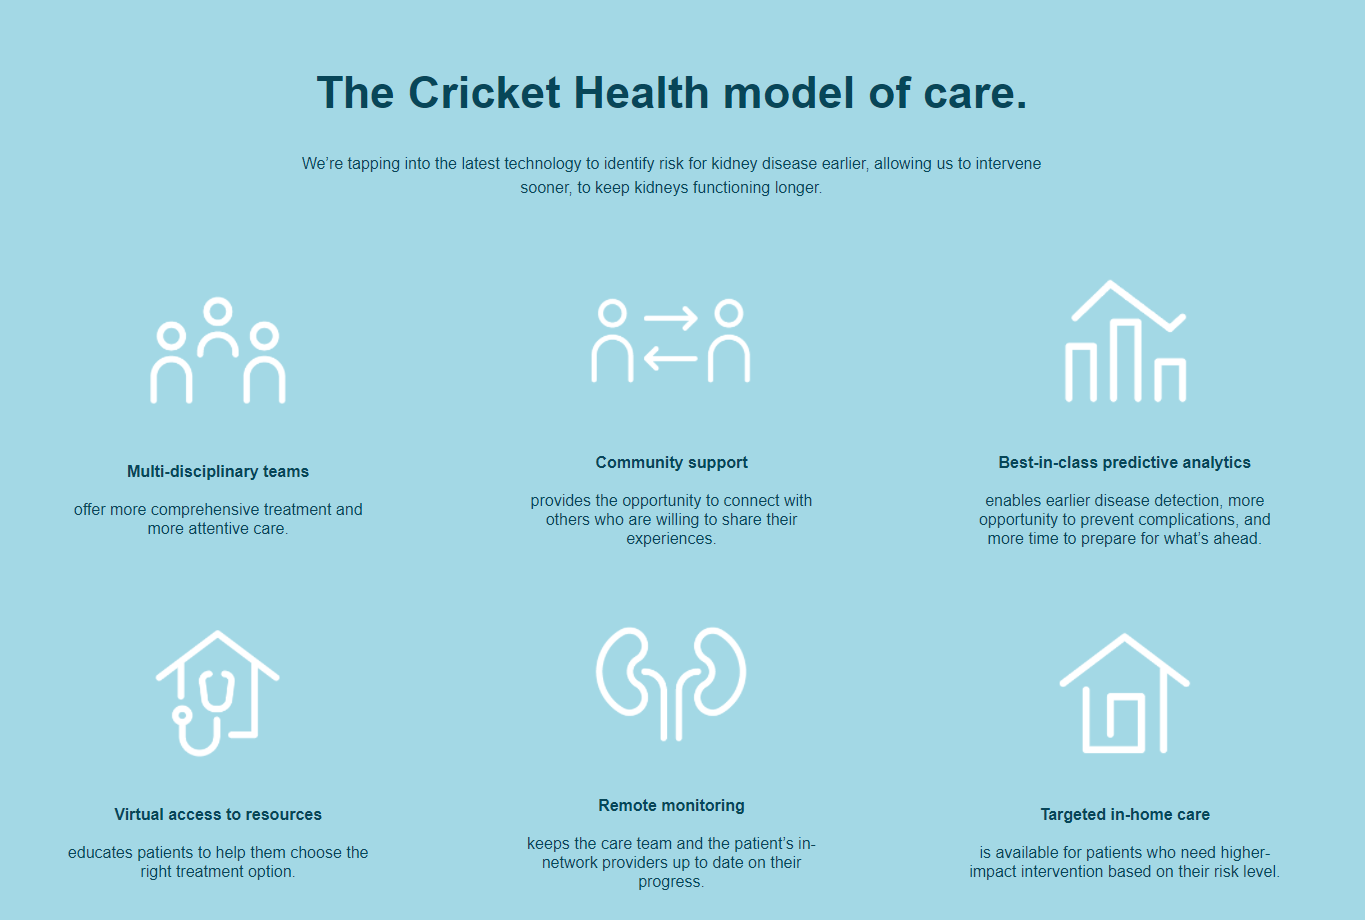 Cricket Health Raises $ 83.5 Million to Expand Value-Based Kidney Care Model to Health Plans